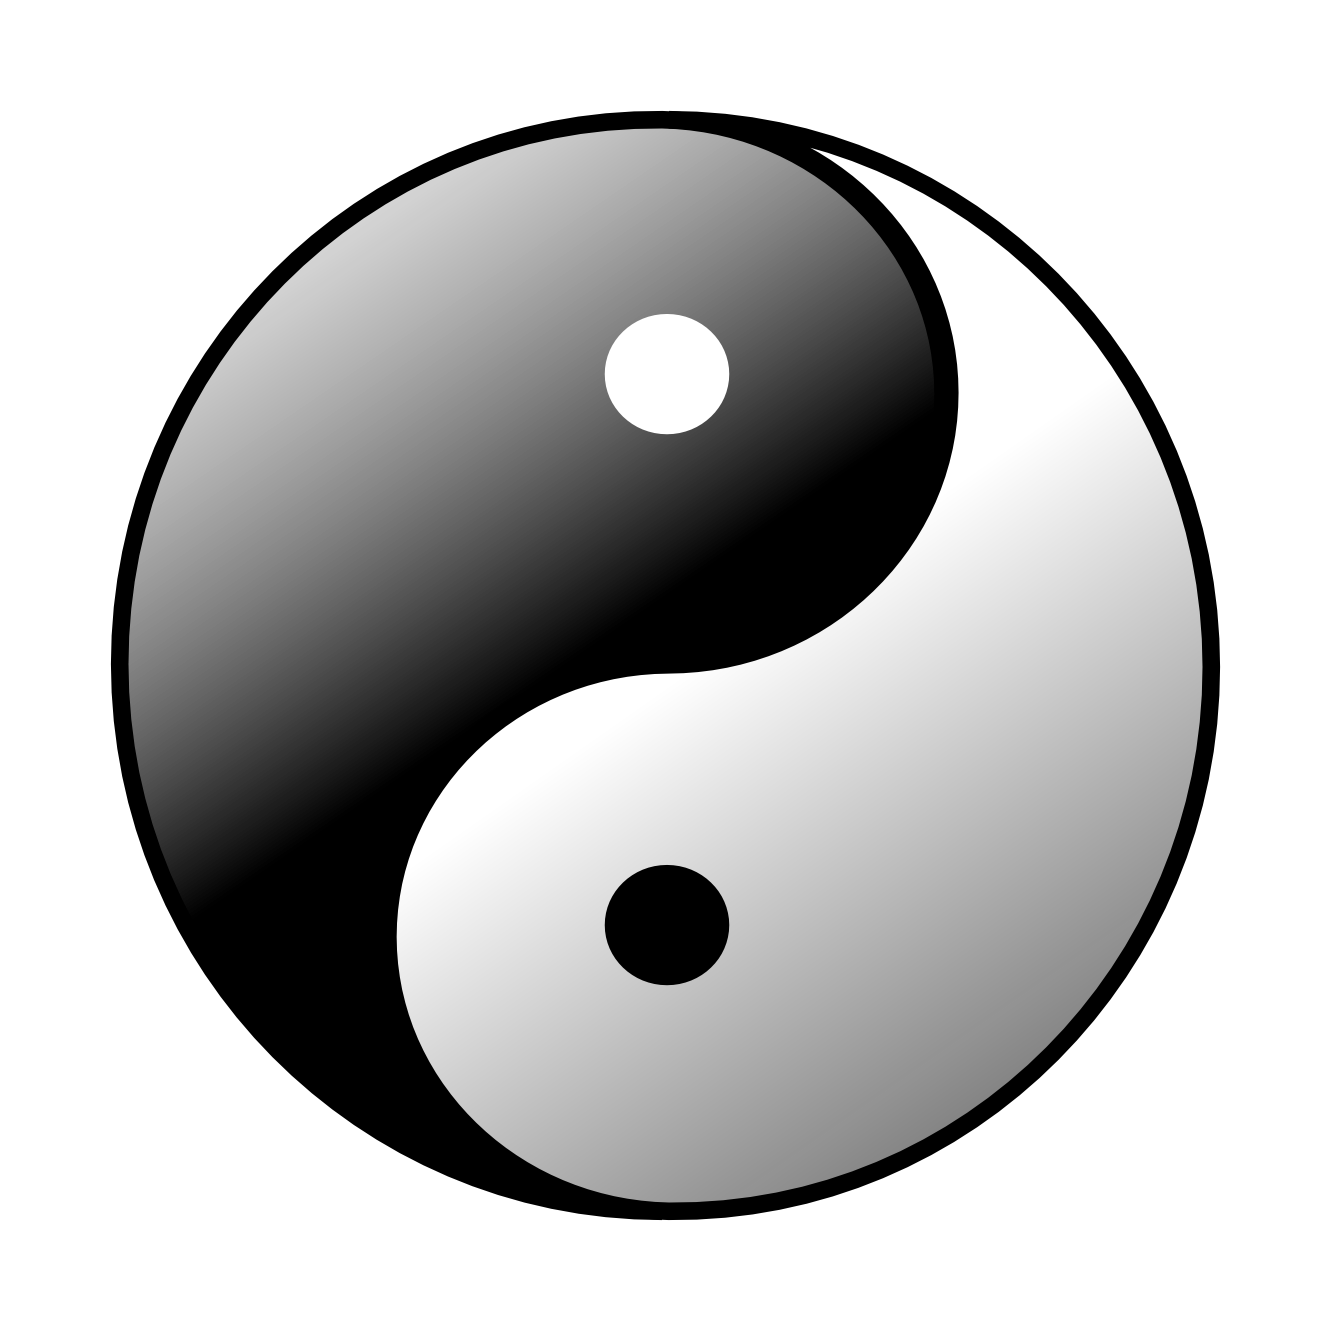 download yin yang tattoos png hq png image freepngimg rh freepngimg com Cool Yin Yang Vector Wings